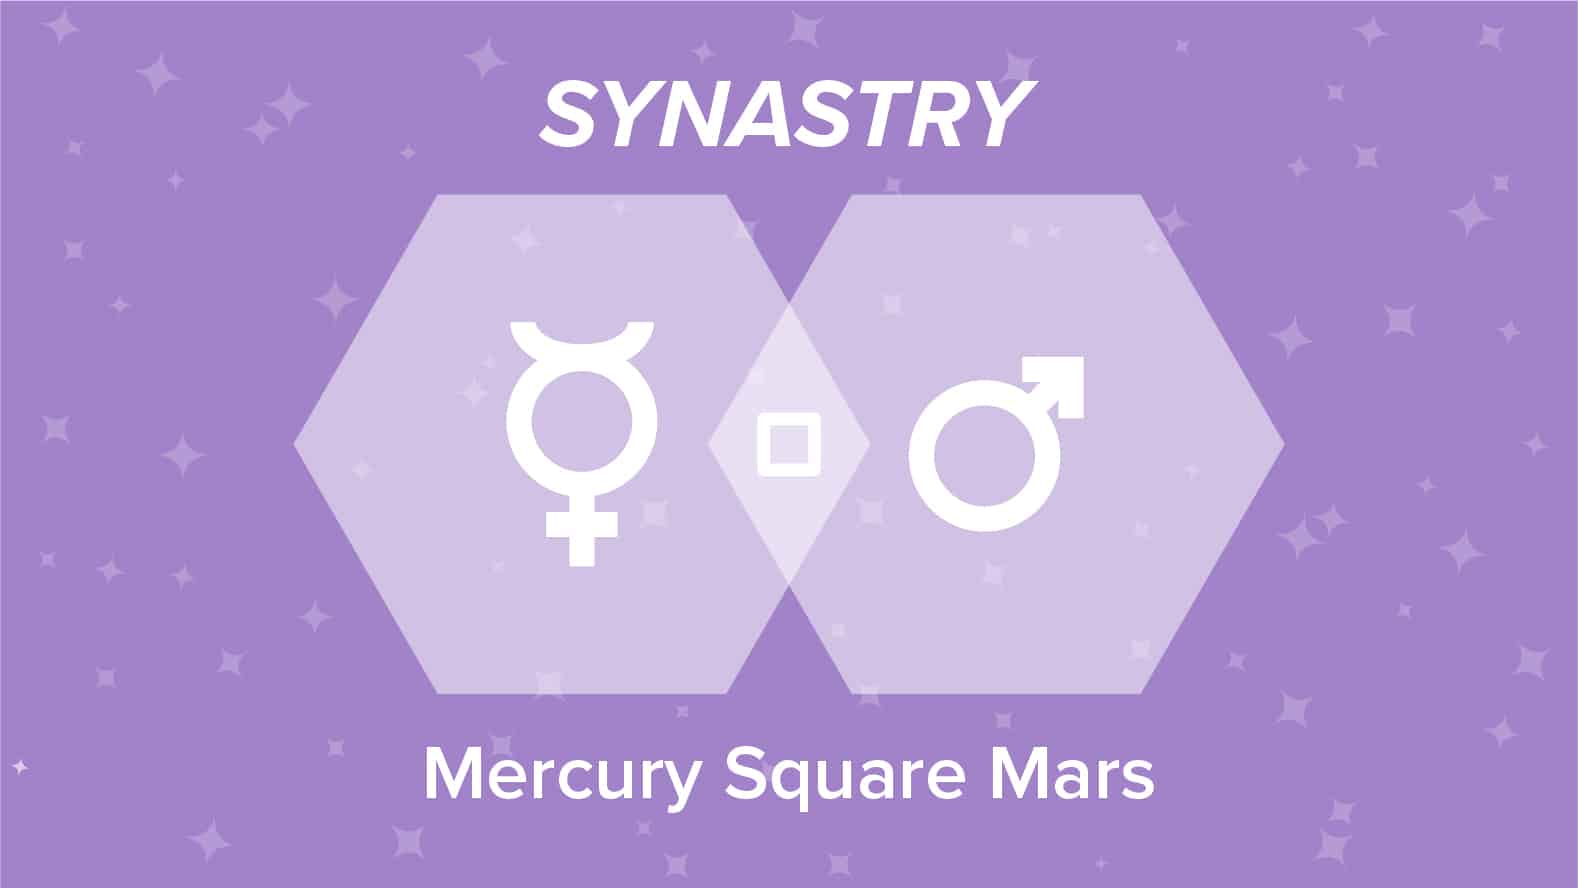 Mercury Square Mars Synastry: Relationships and Friendships Explained